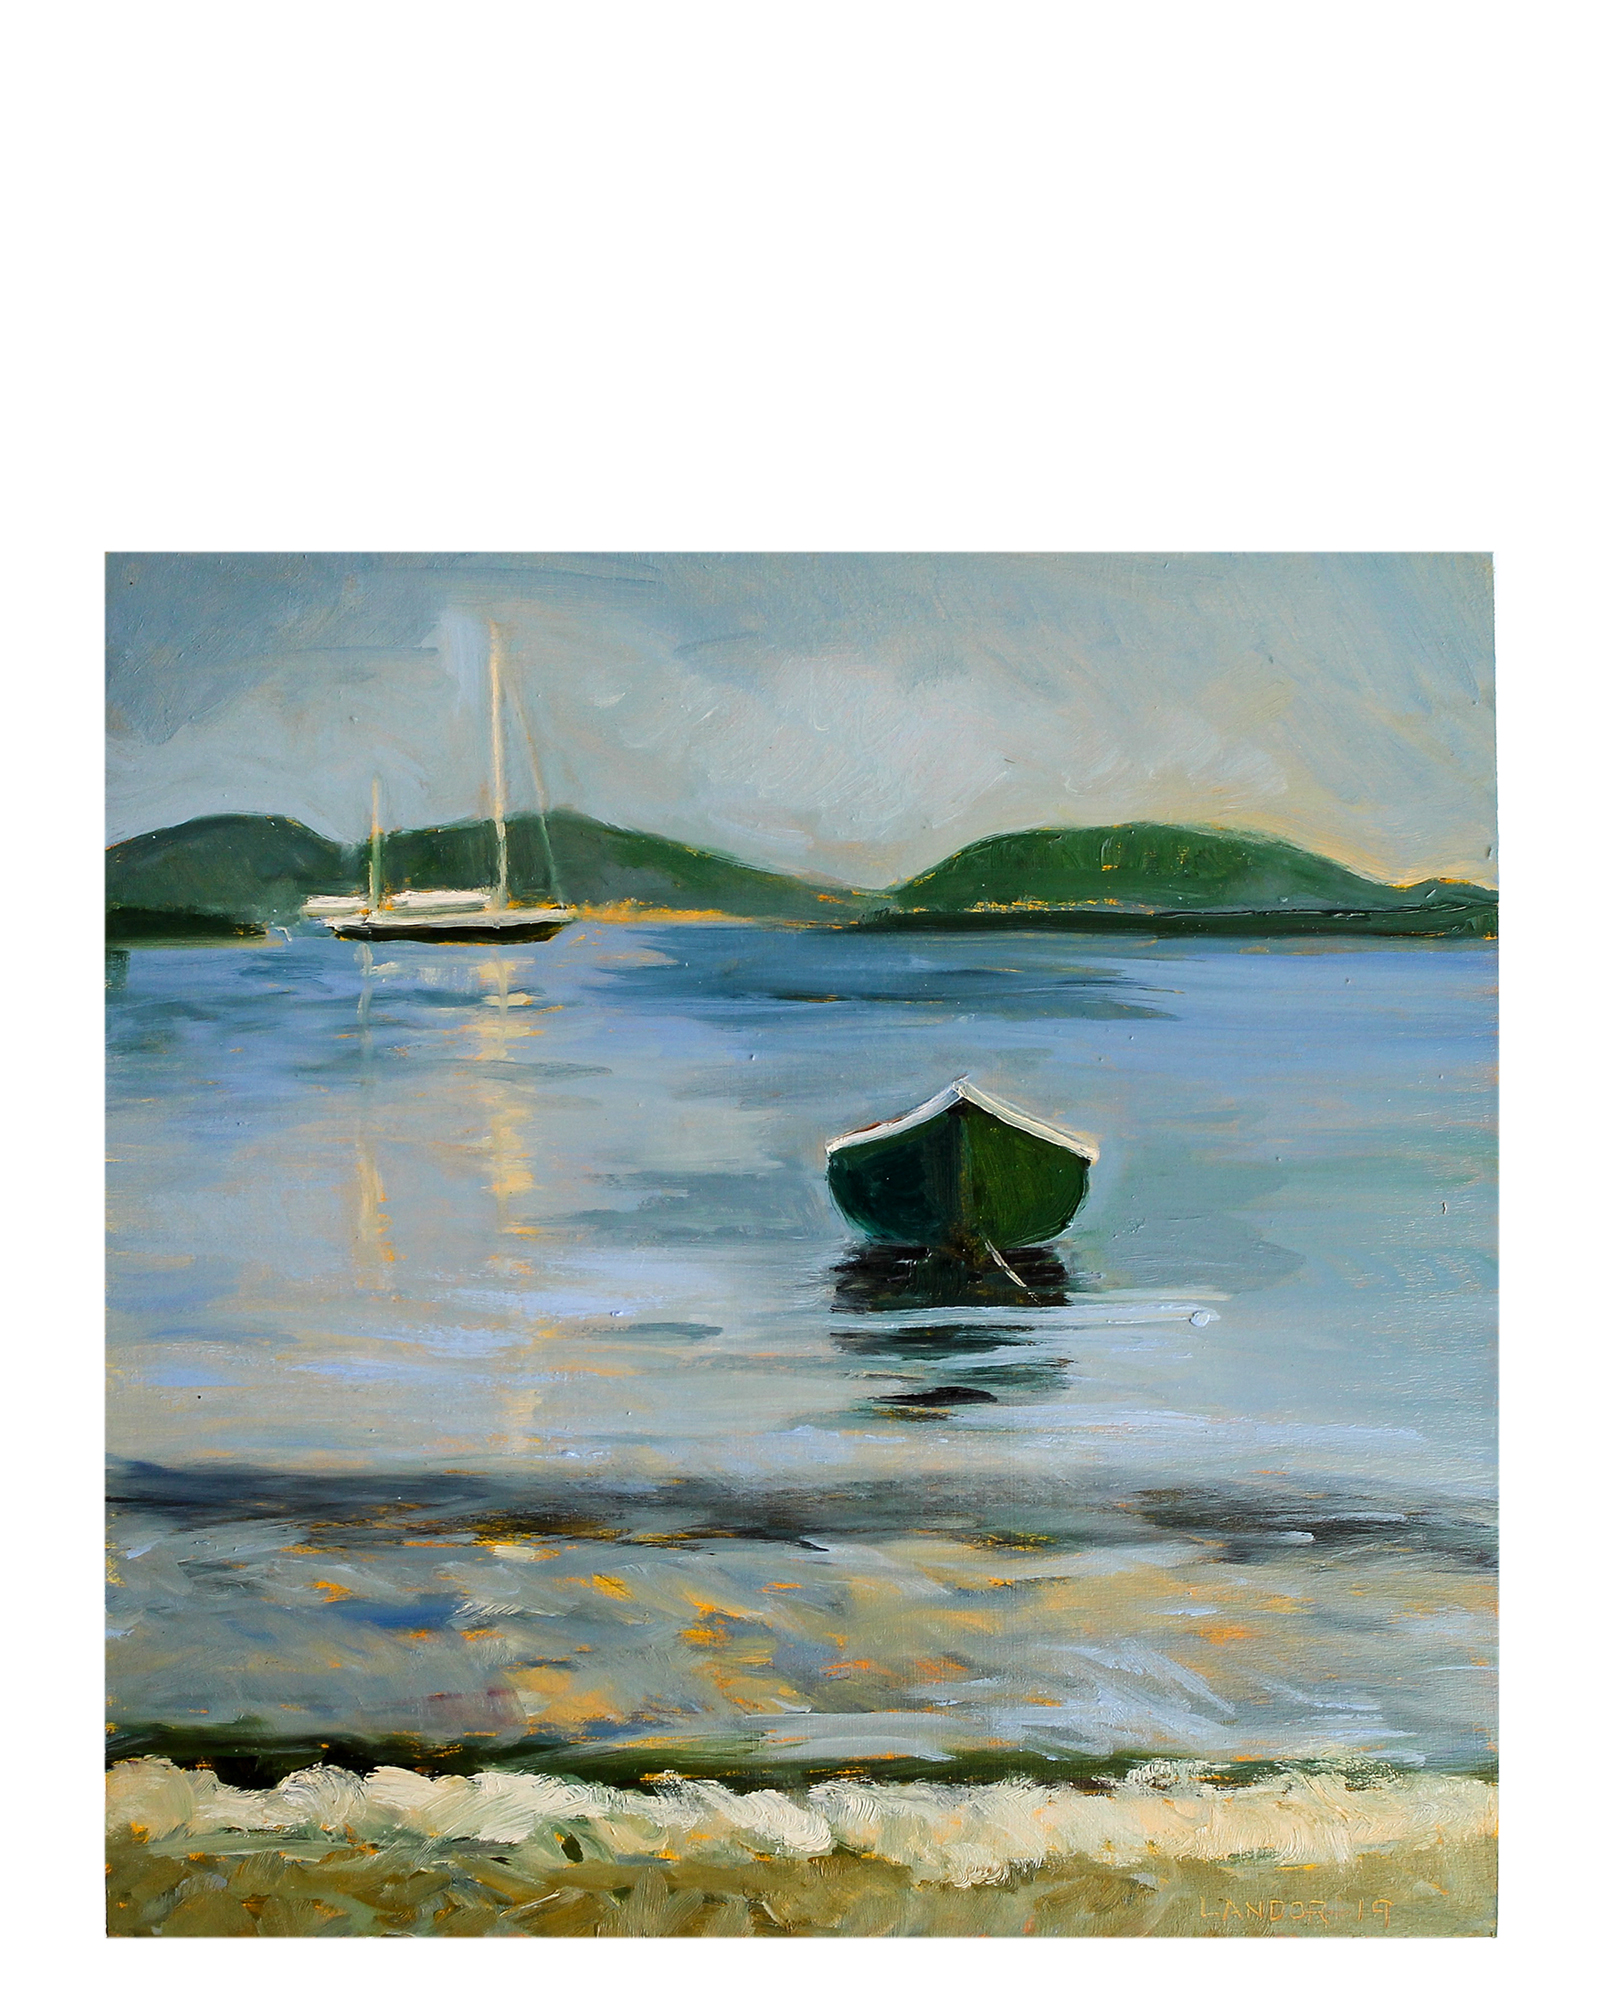 """Morning Row"" by Susan Landor Keegin,"